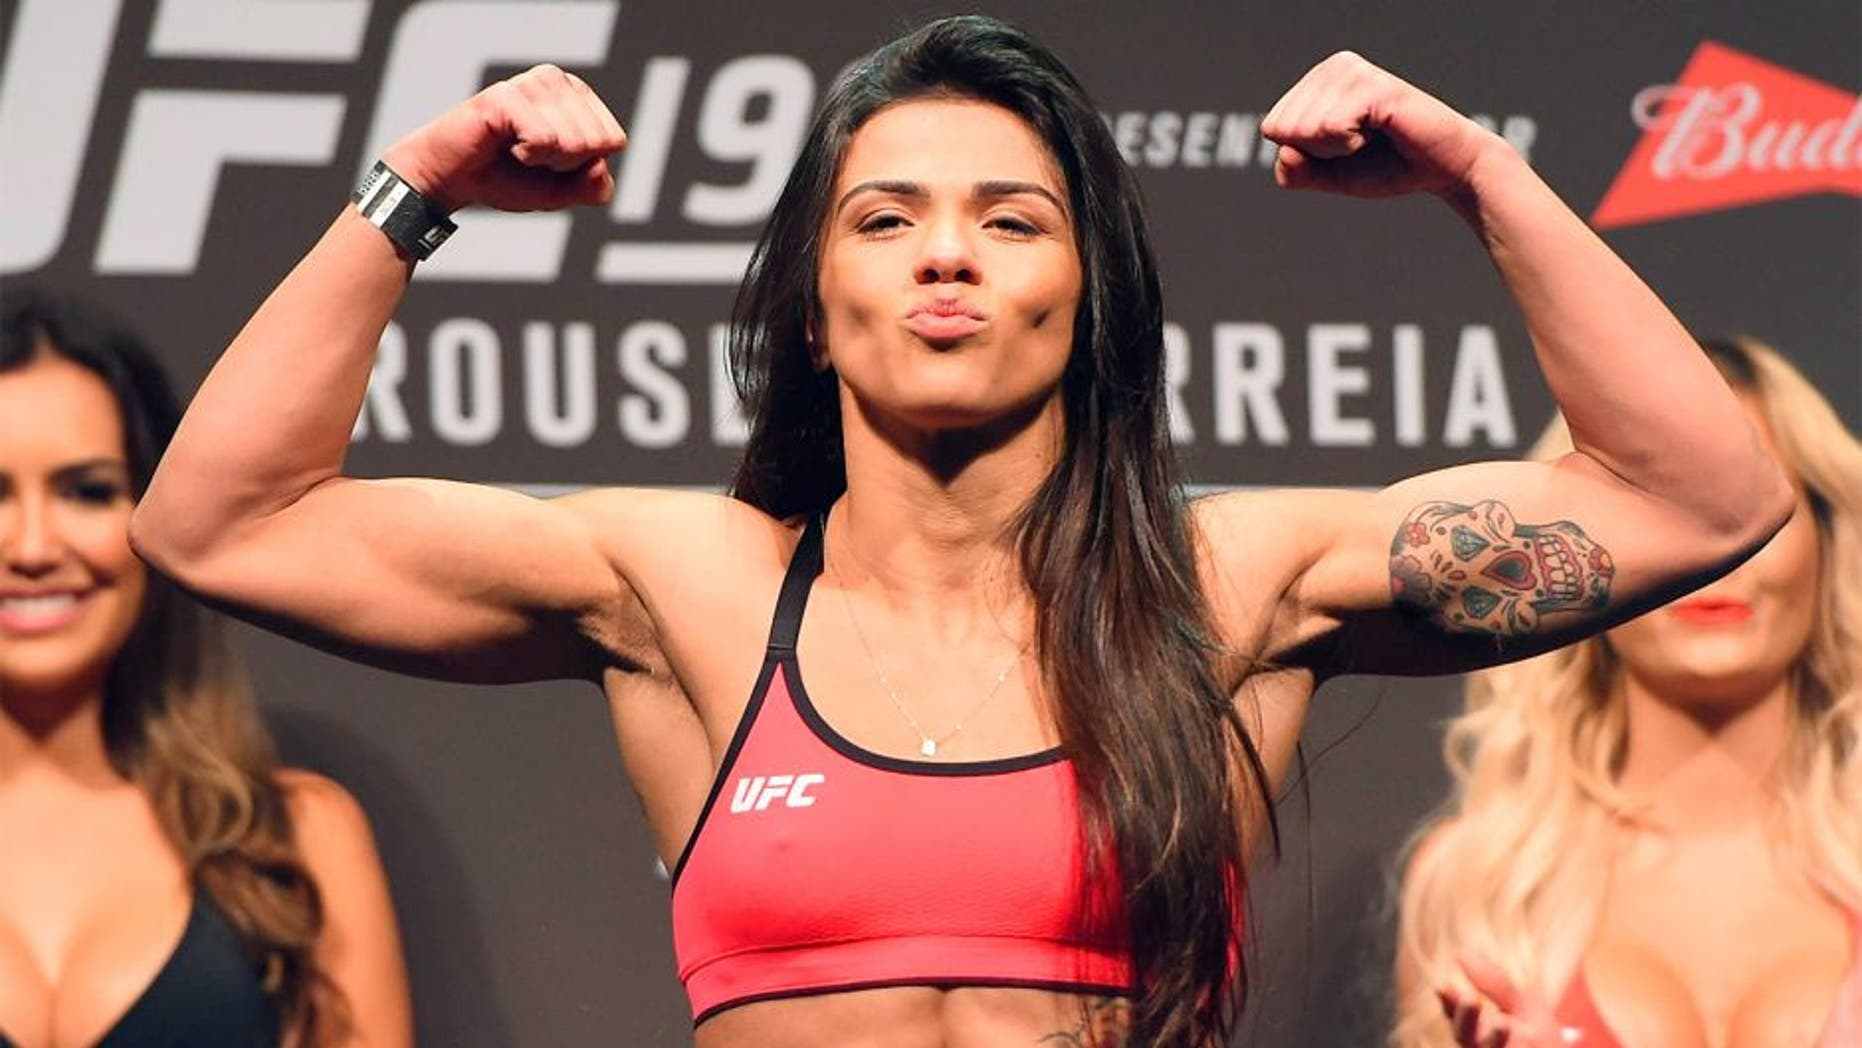 RIO DE JANEIRO, BRAZIL - JULY 31: Claudia Gadelha steps onto the scale during the UFC 190 weigh-in inside HSBC Arena on July 31, 2015 in Rio de Janeiro, Brazil. (Photo by Josh Hedges/Zuffa LLC/Zuffa LLC via Getty Images)